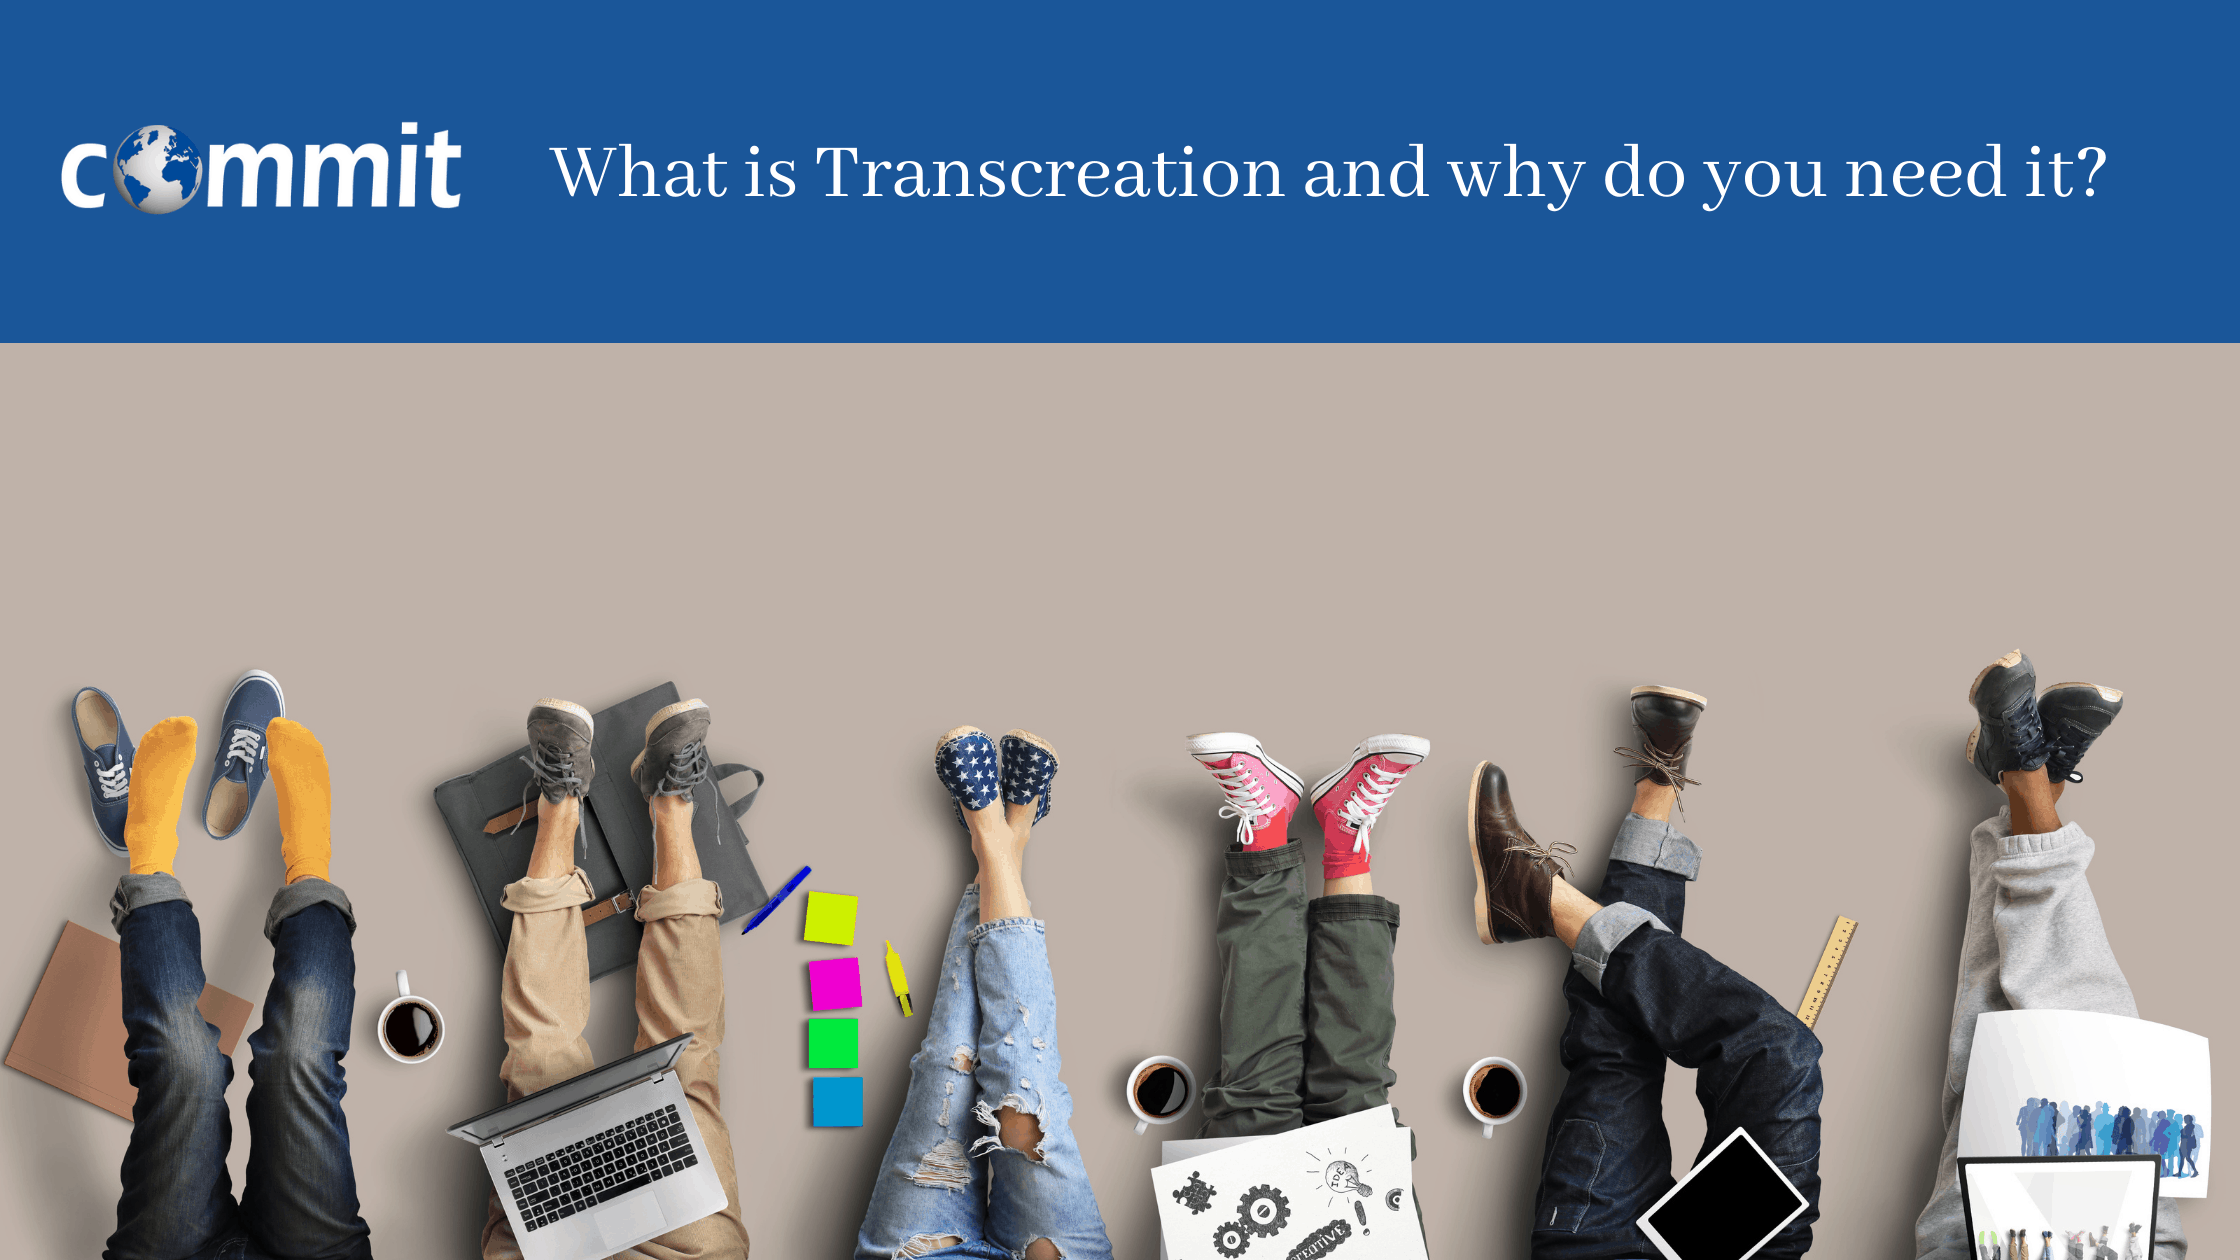 What is Transcreation and why do you need it?